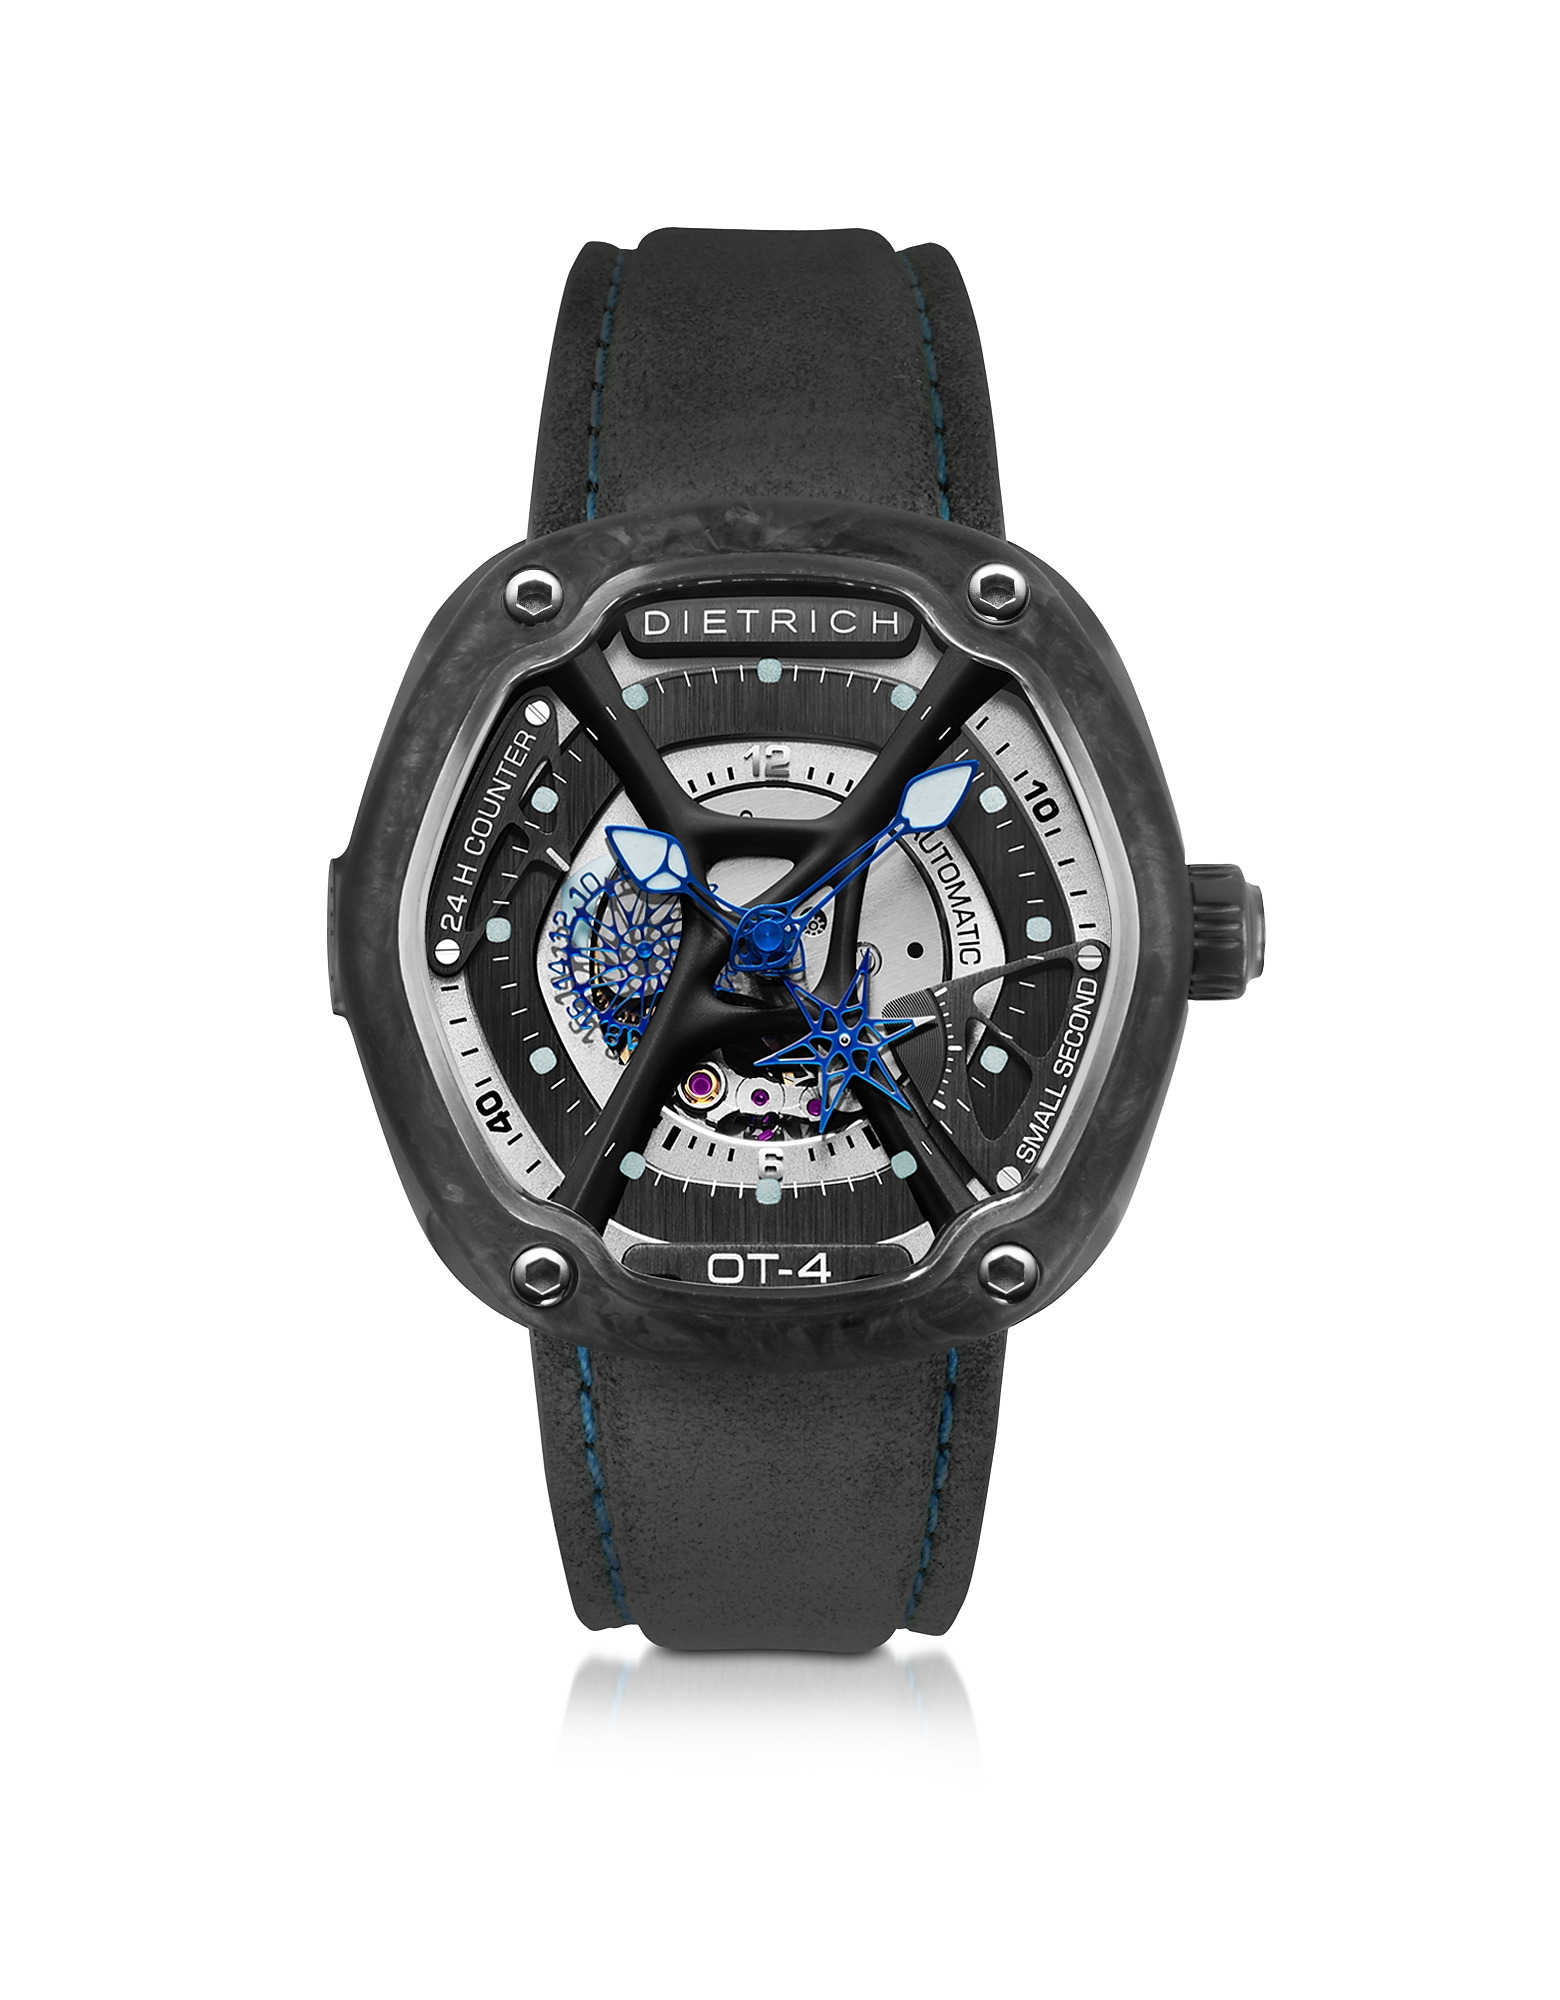 Dietrich Men's Watches, OT-4 316L Steel And Forged Carbon Men's Watch w/Blue Luminova and Gray Suede